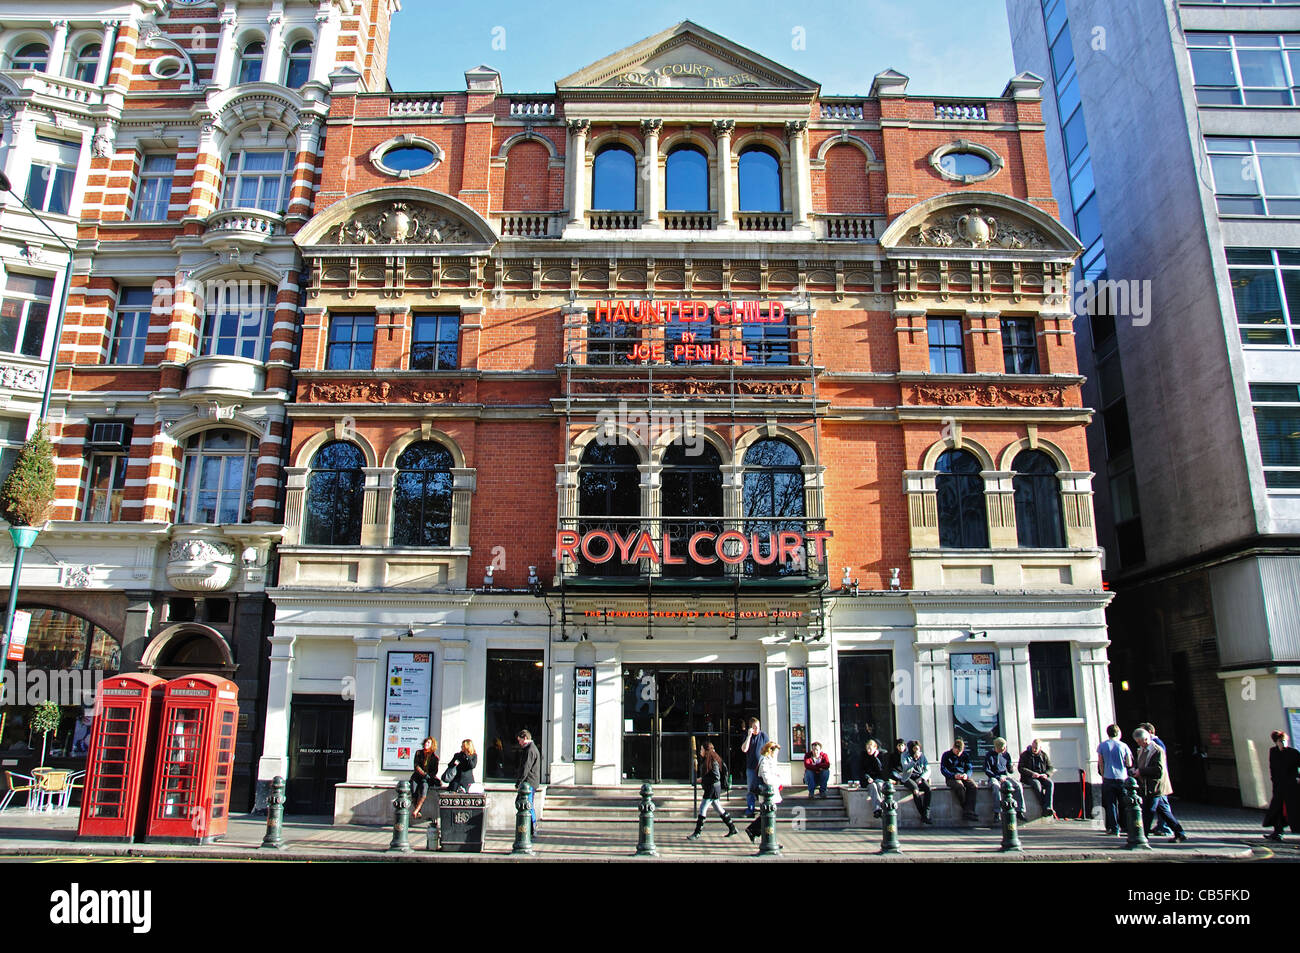 Royal Court Theatre, Sloane Square, Chelsea, Royal Borough of Kensington and Chelsea, Greater London, England, United - Stock Image